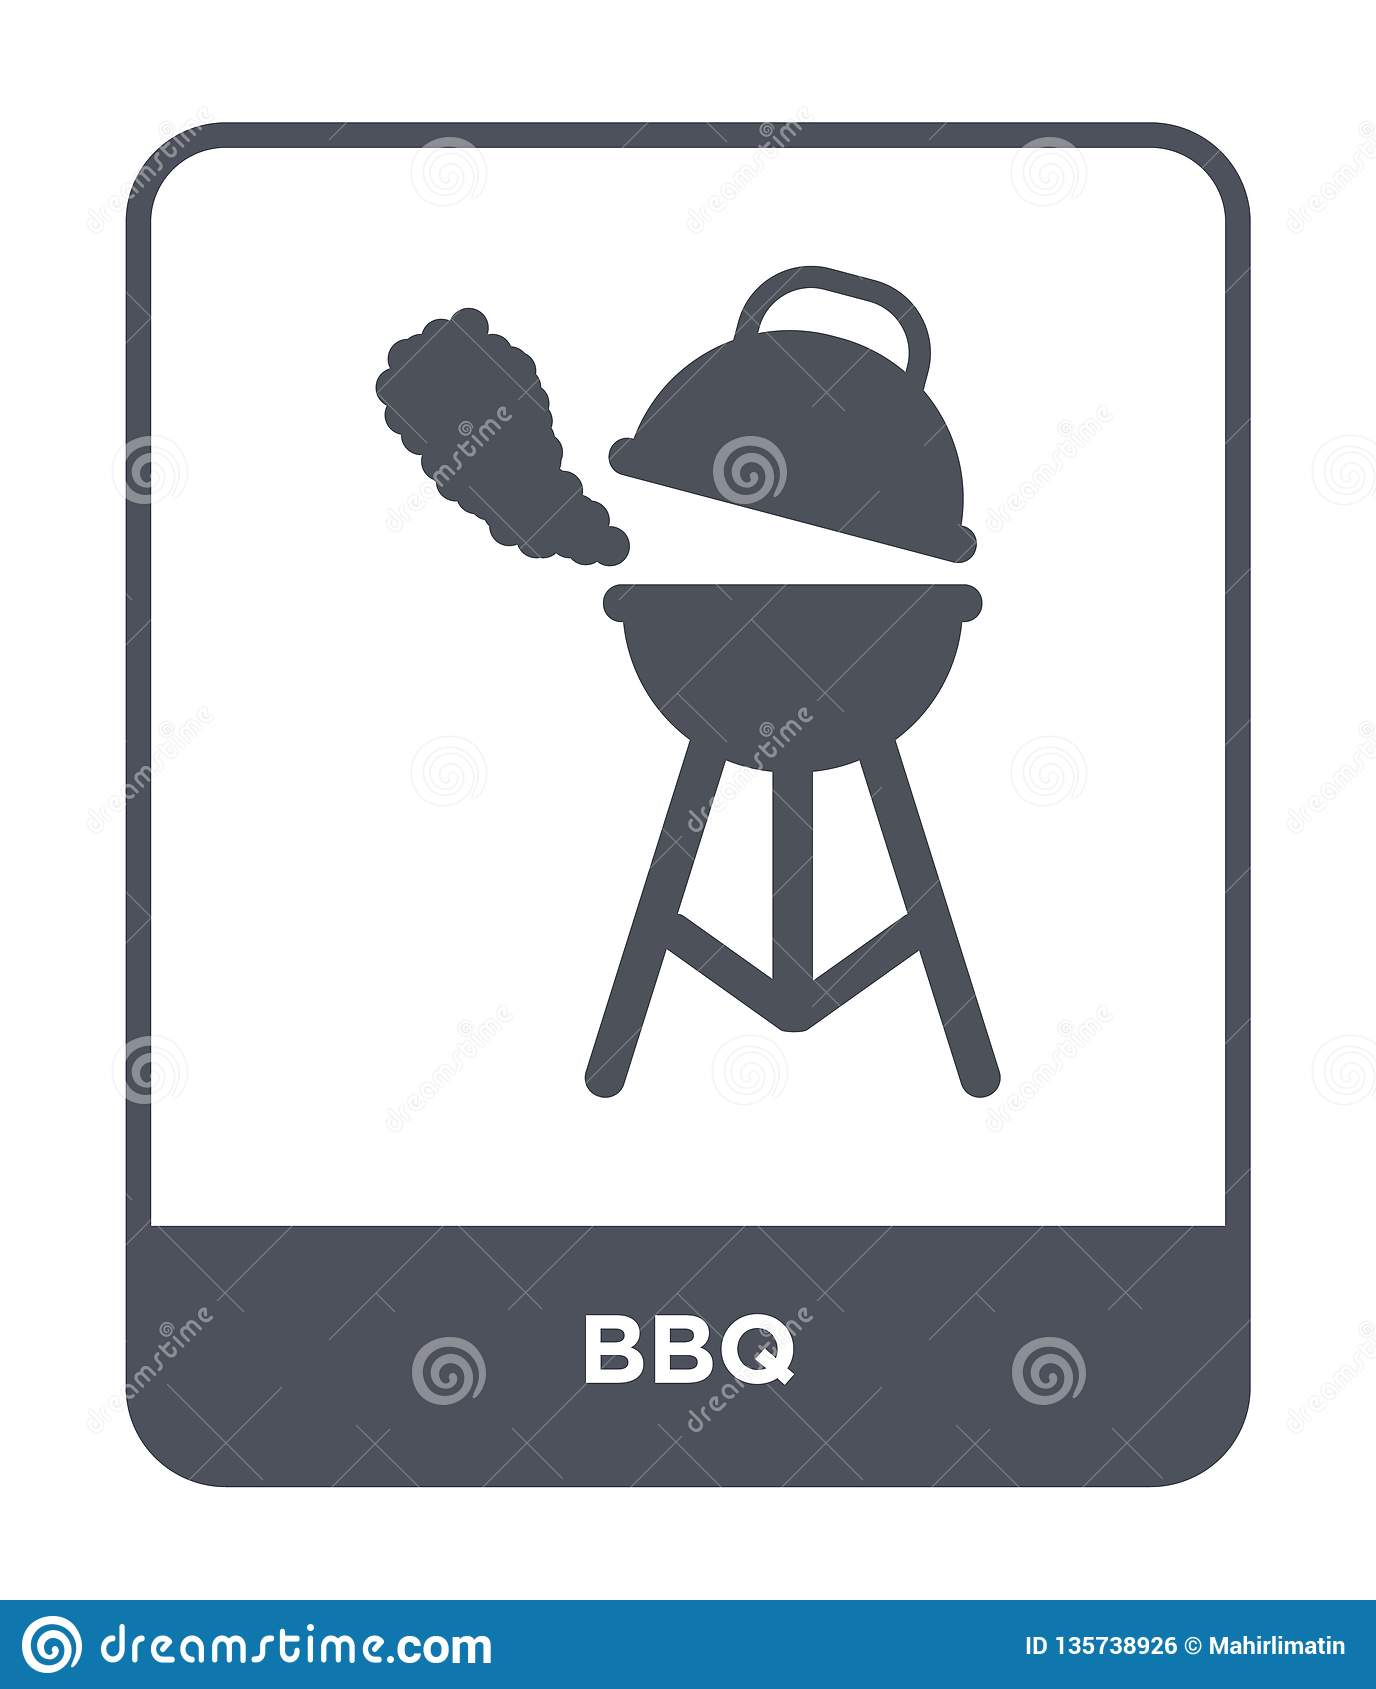 bbq icon in trendy design style. bbq icon isolated on white background. bbq vector icon simple and modern flat symbol for web site